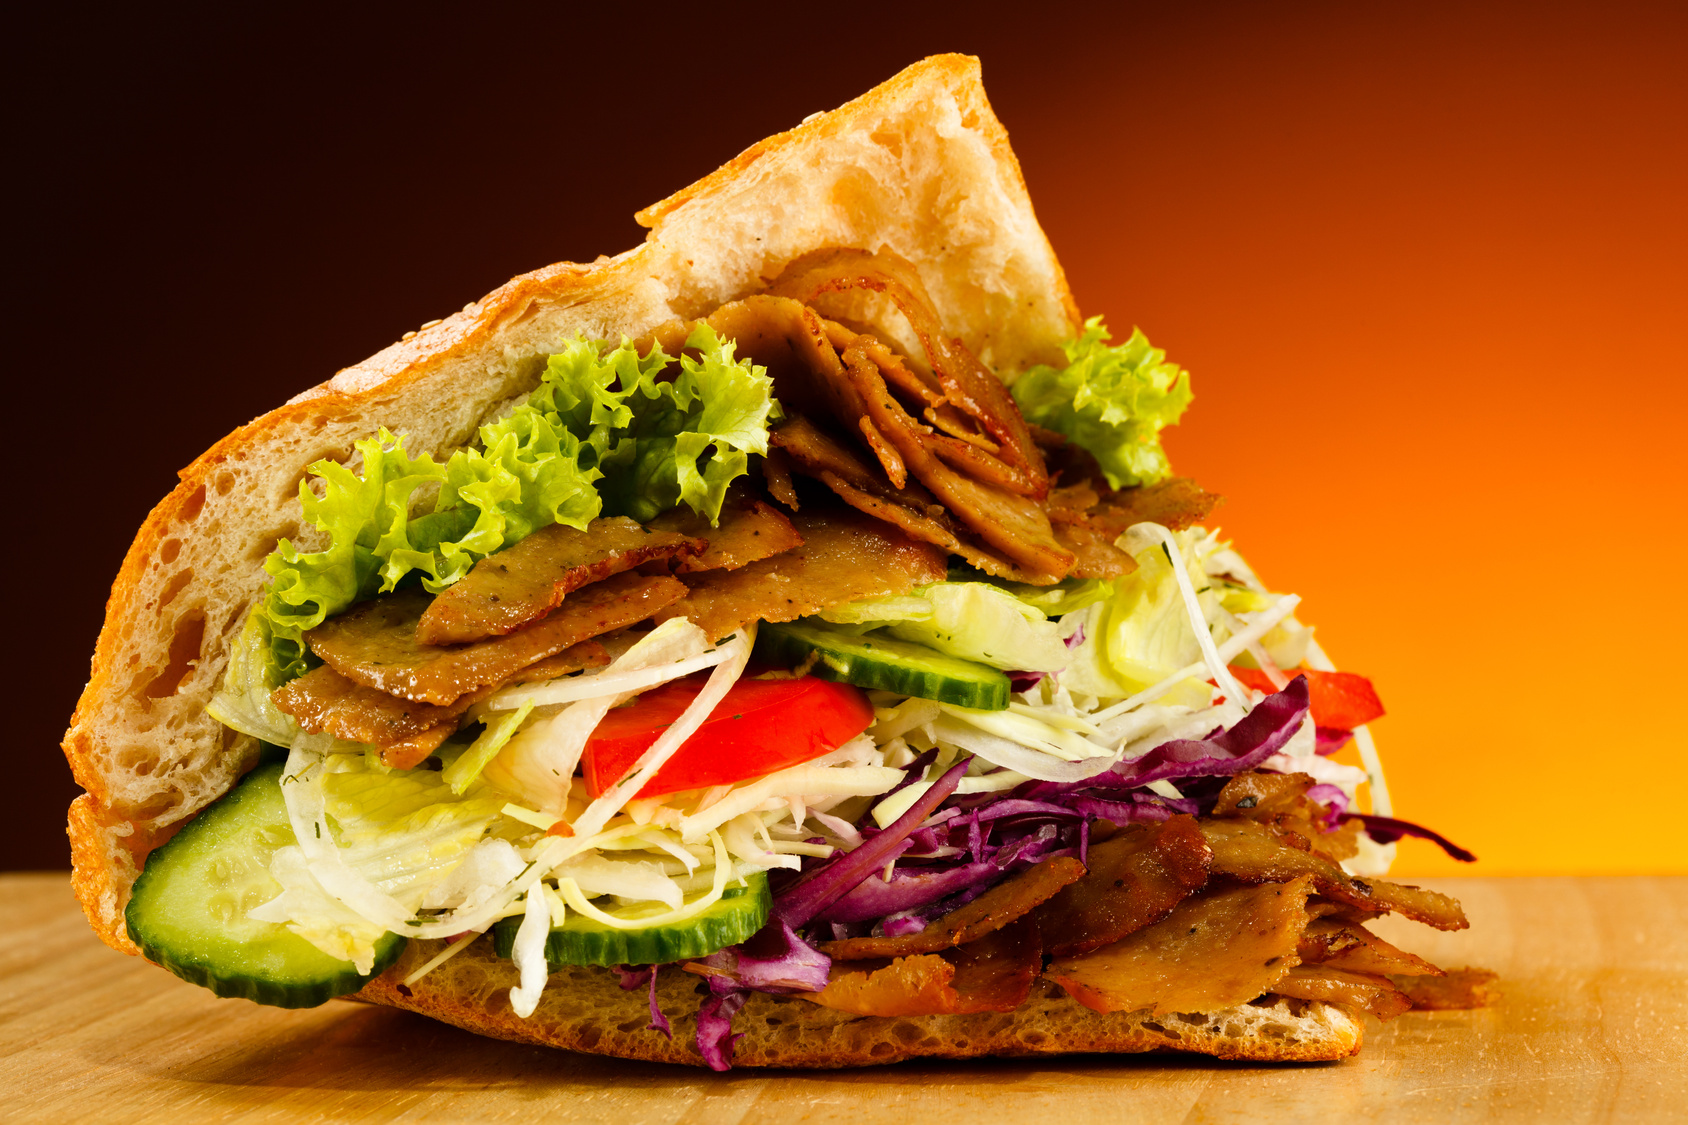 Kebab - grilled meat, bread and vegetables